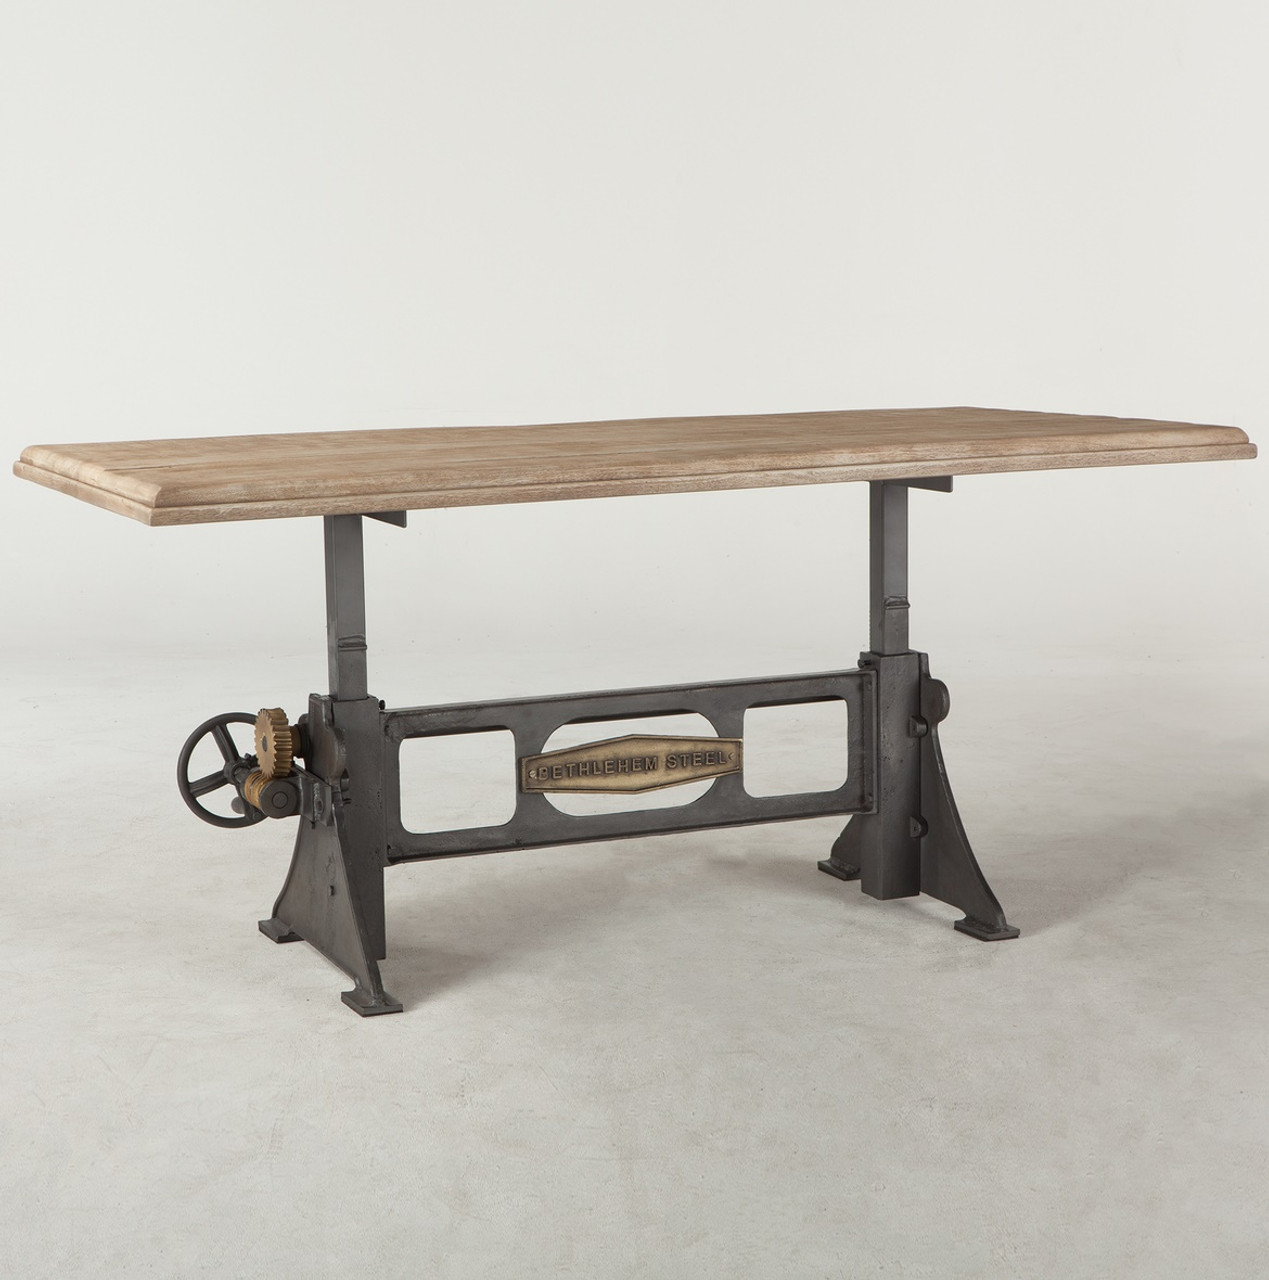 Steampunk industrial steel wood crank dining table 72 zin home steampunk industrial steel wood crank dining table 72 geotapseo Image collections